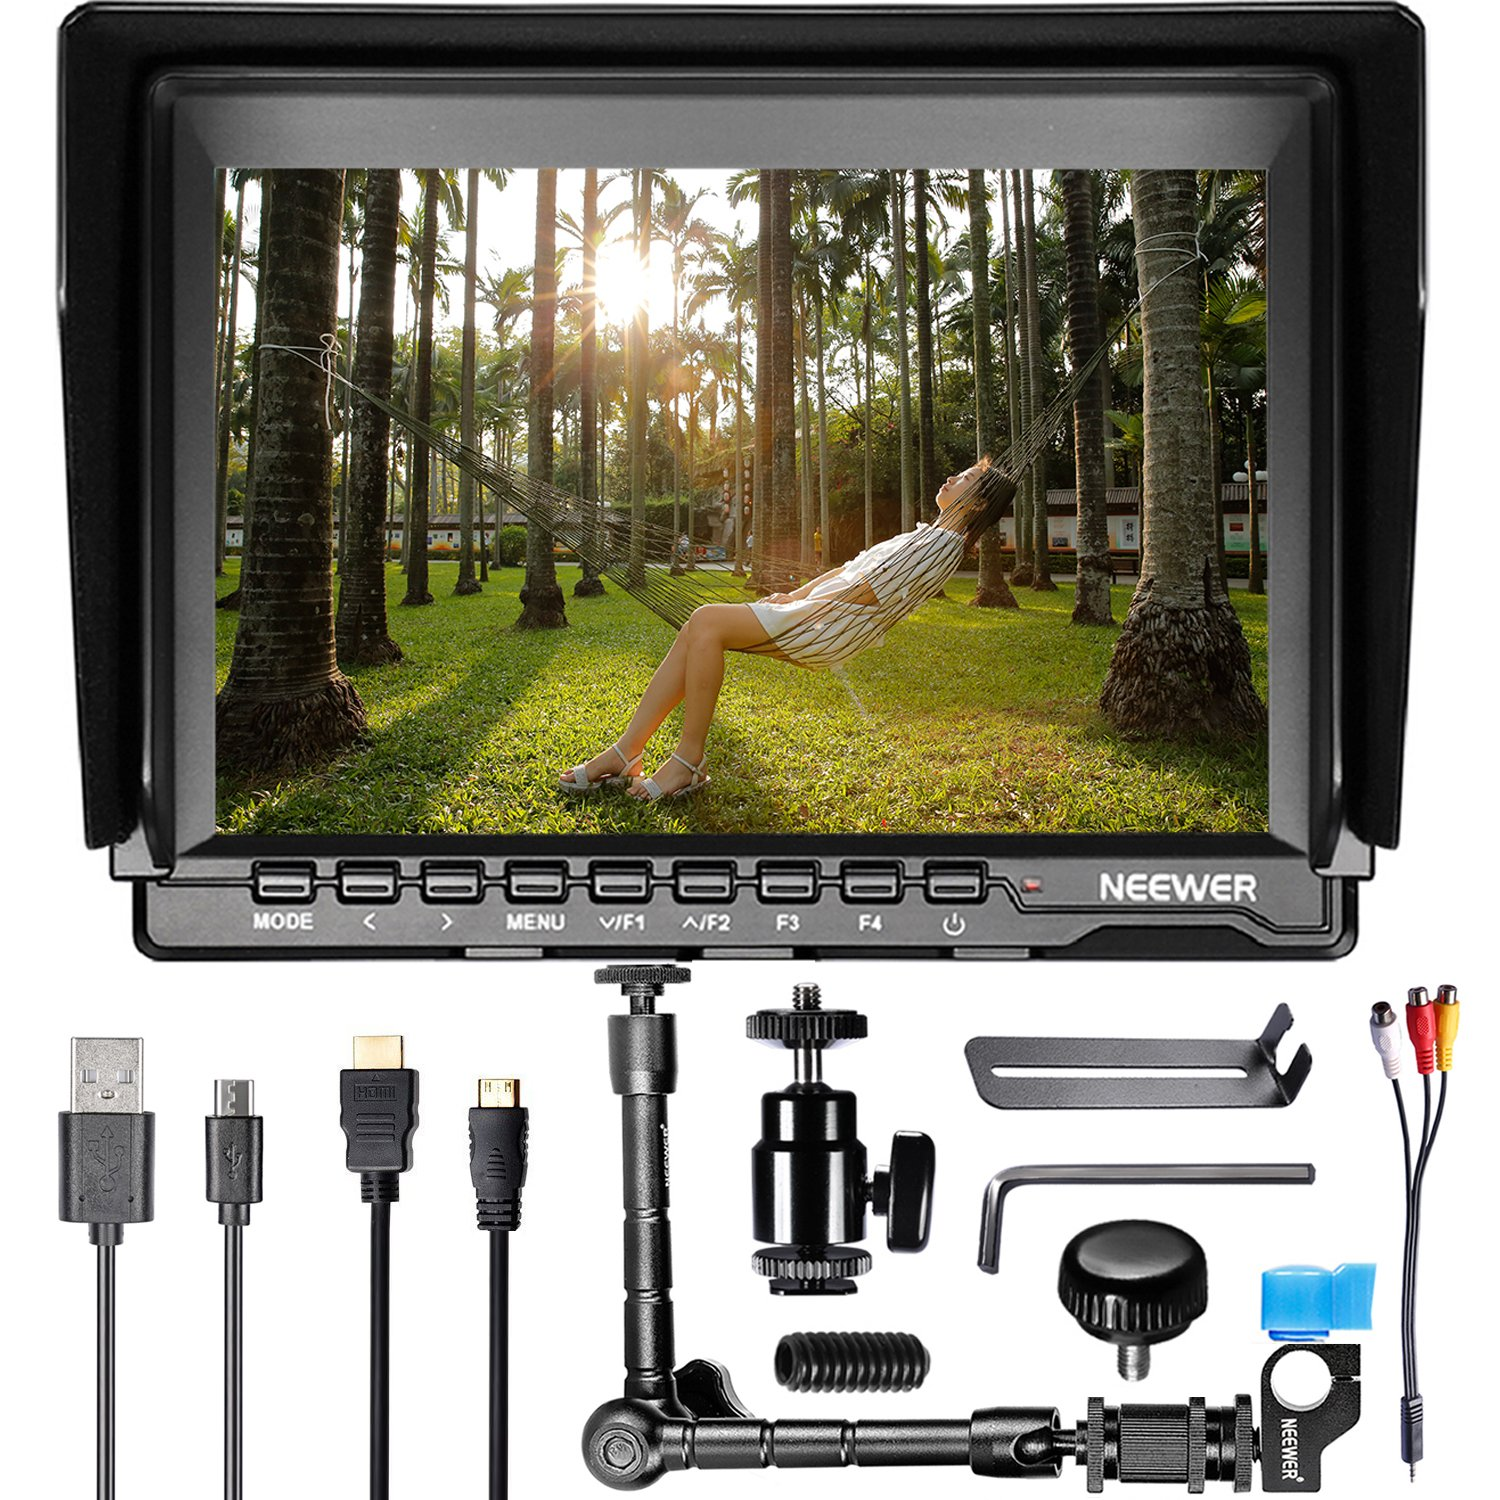 Neewer 7 inch NW759 HD Camera Monitor Kit:(1) 1280x800 IPS Screen Camera Field Monitor+(1)11.8 inches Magic Arm+(1)USB Battery Charger+(2)F550 Replacement Battery for Sony Canon Nikon 90088621